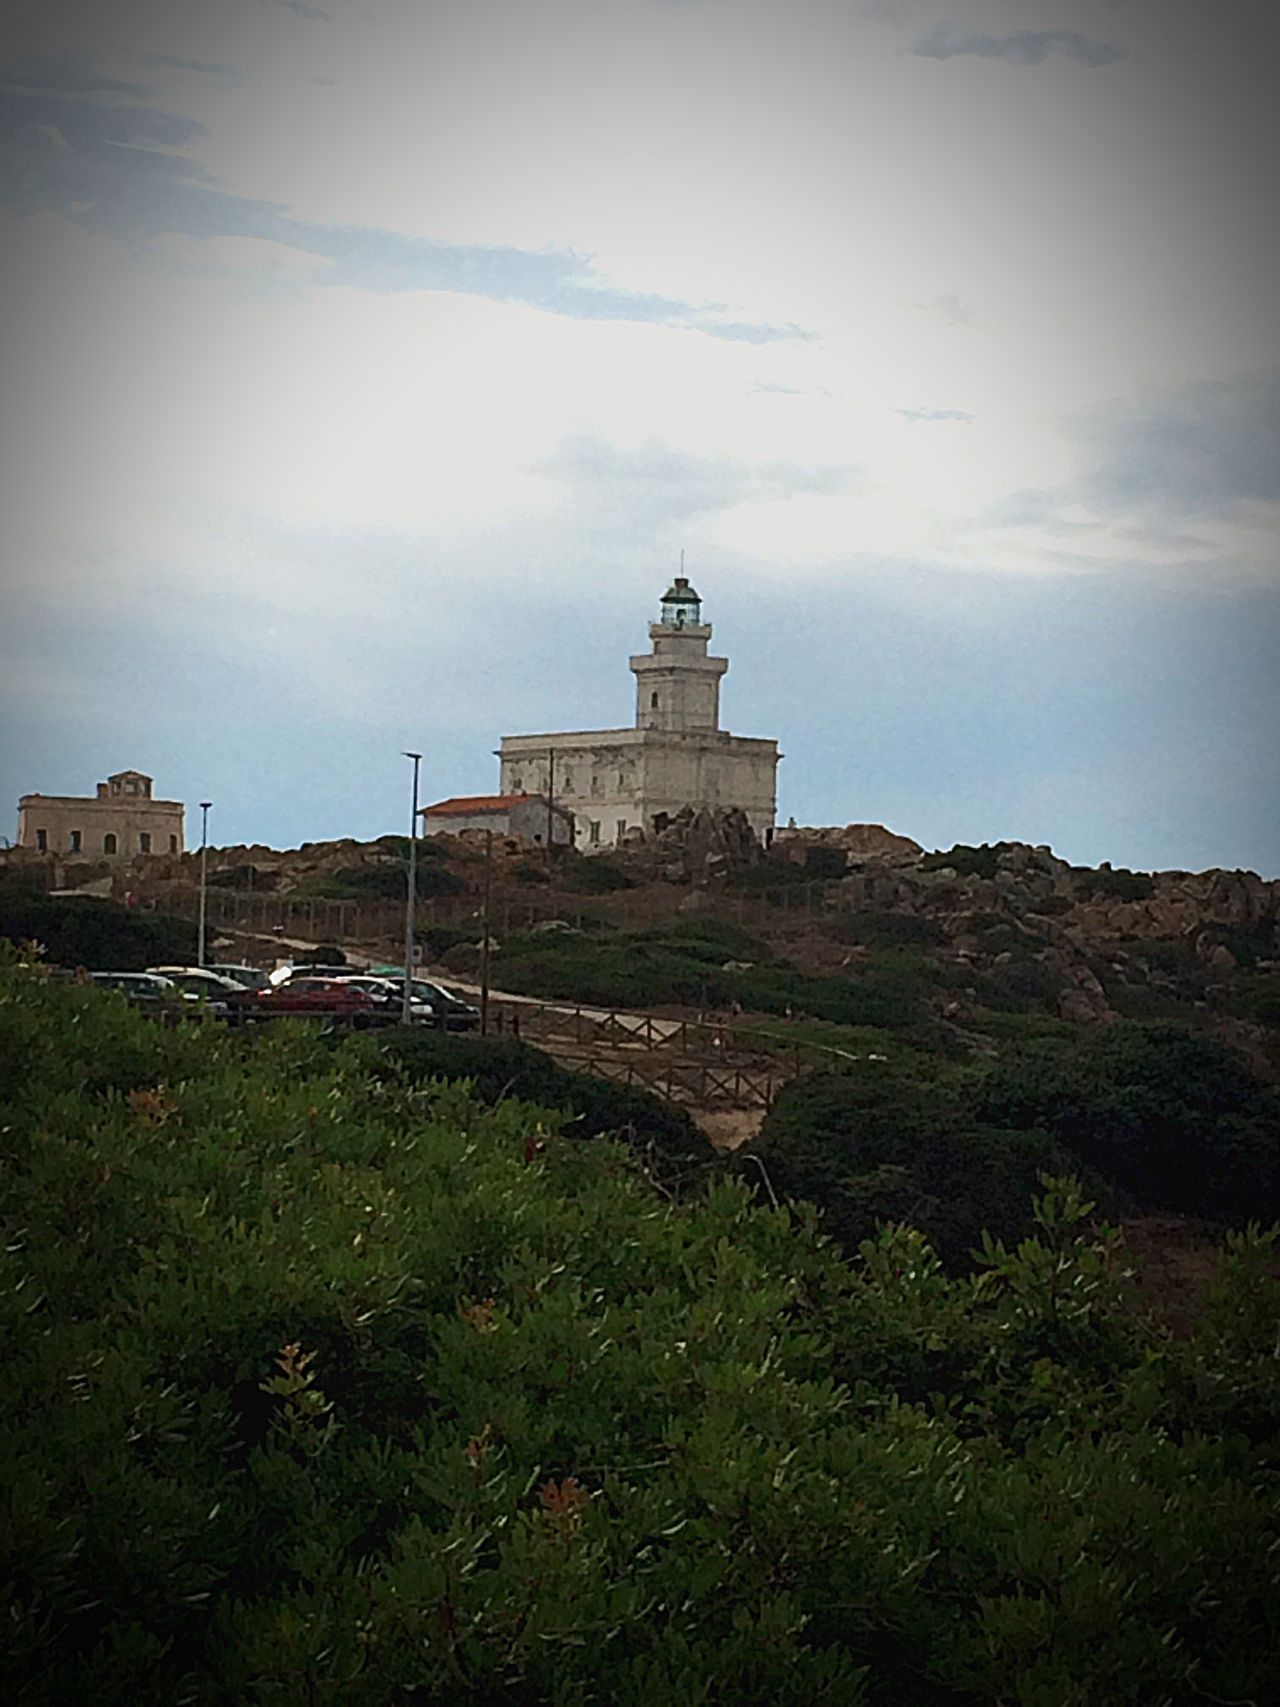 Lighthouse Lighthouse_lovers Sardegna Sardegnamylove Sardegnamare Sardegna_super_pics Capotesta